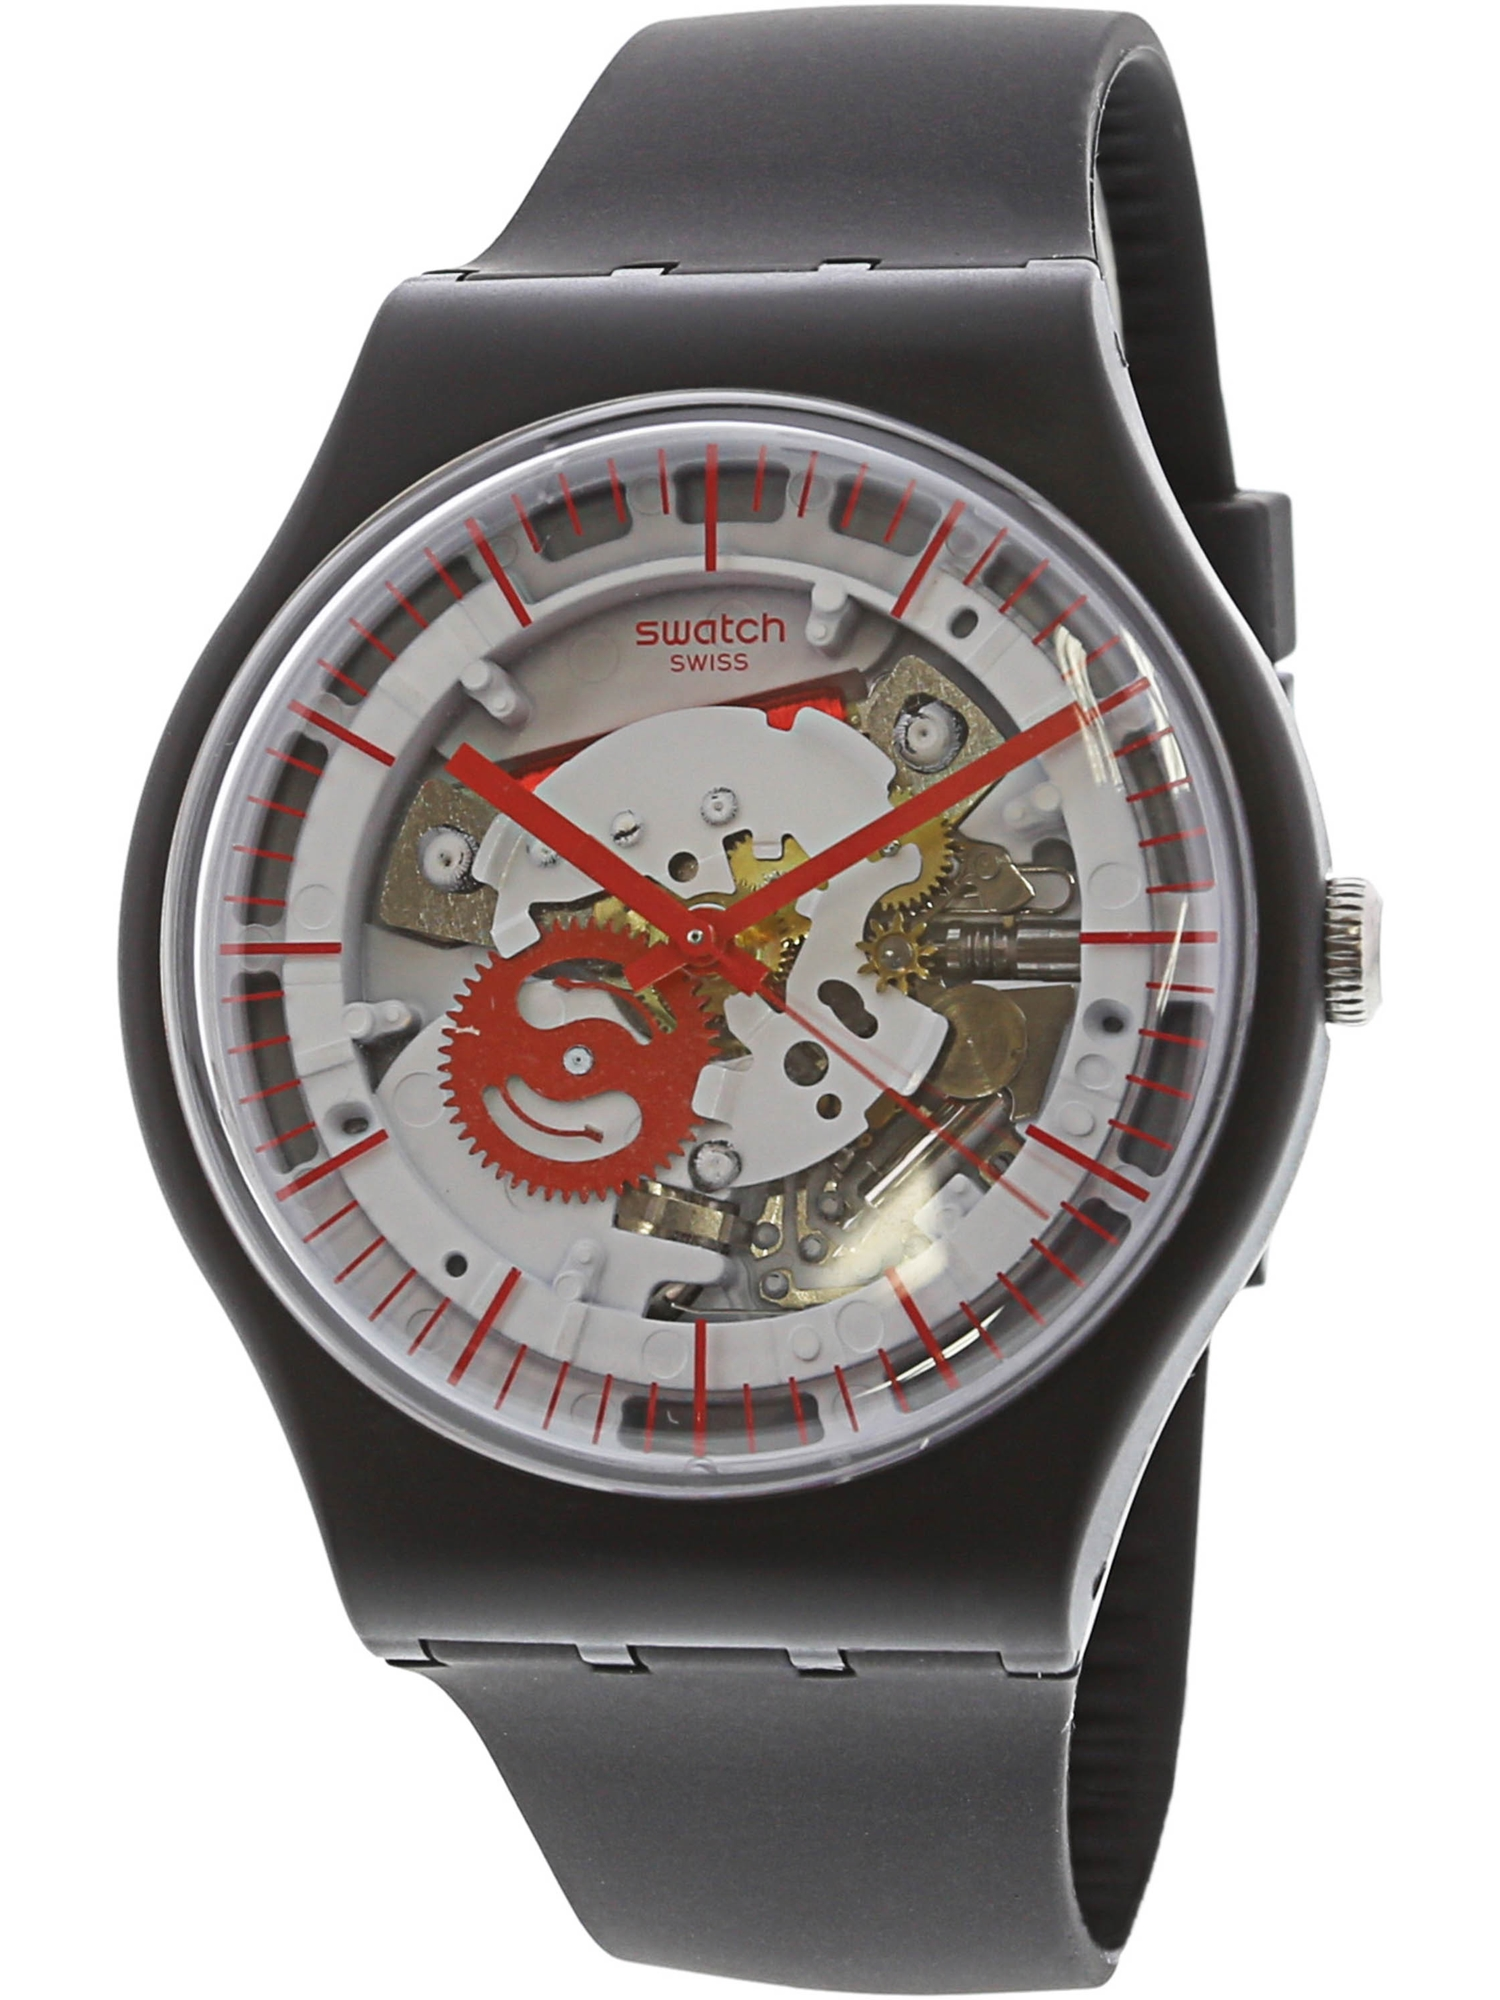 Swatch Casual Siliblack Silicone Watch for Men and Women.